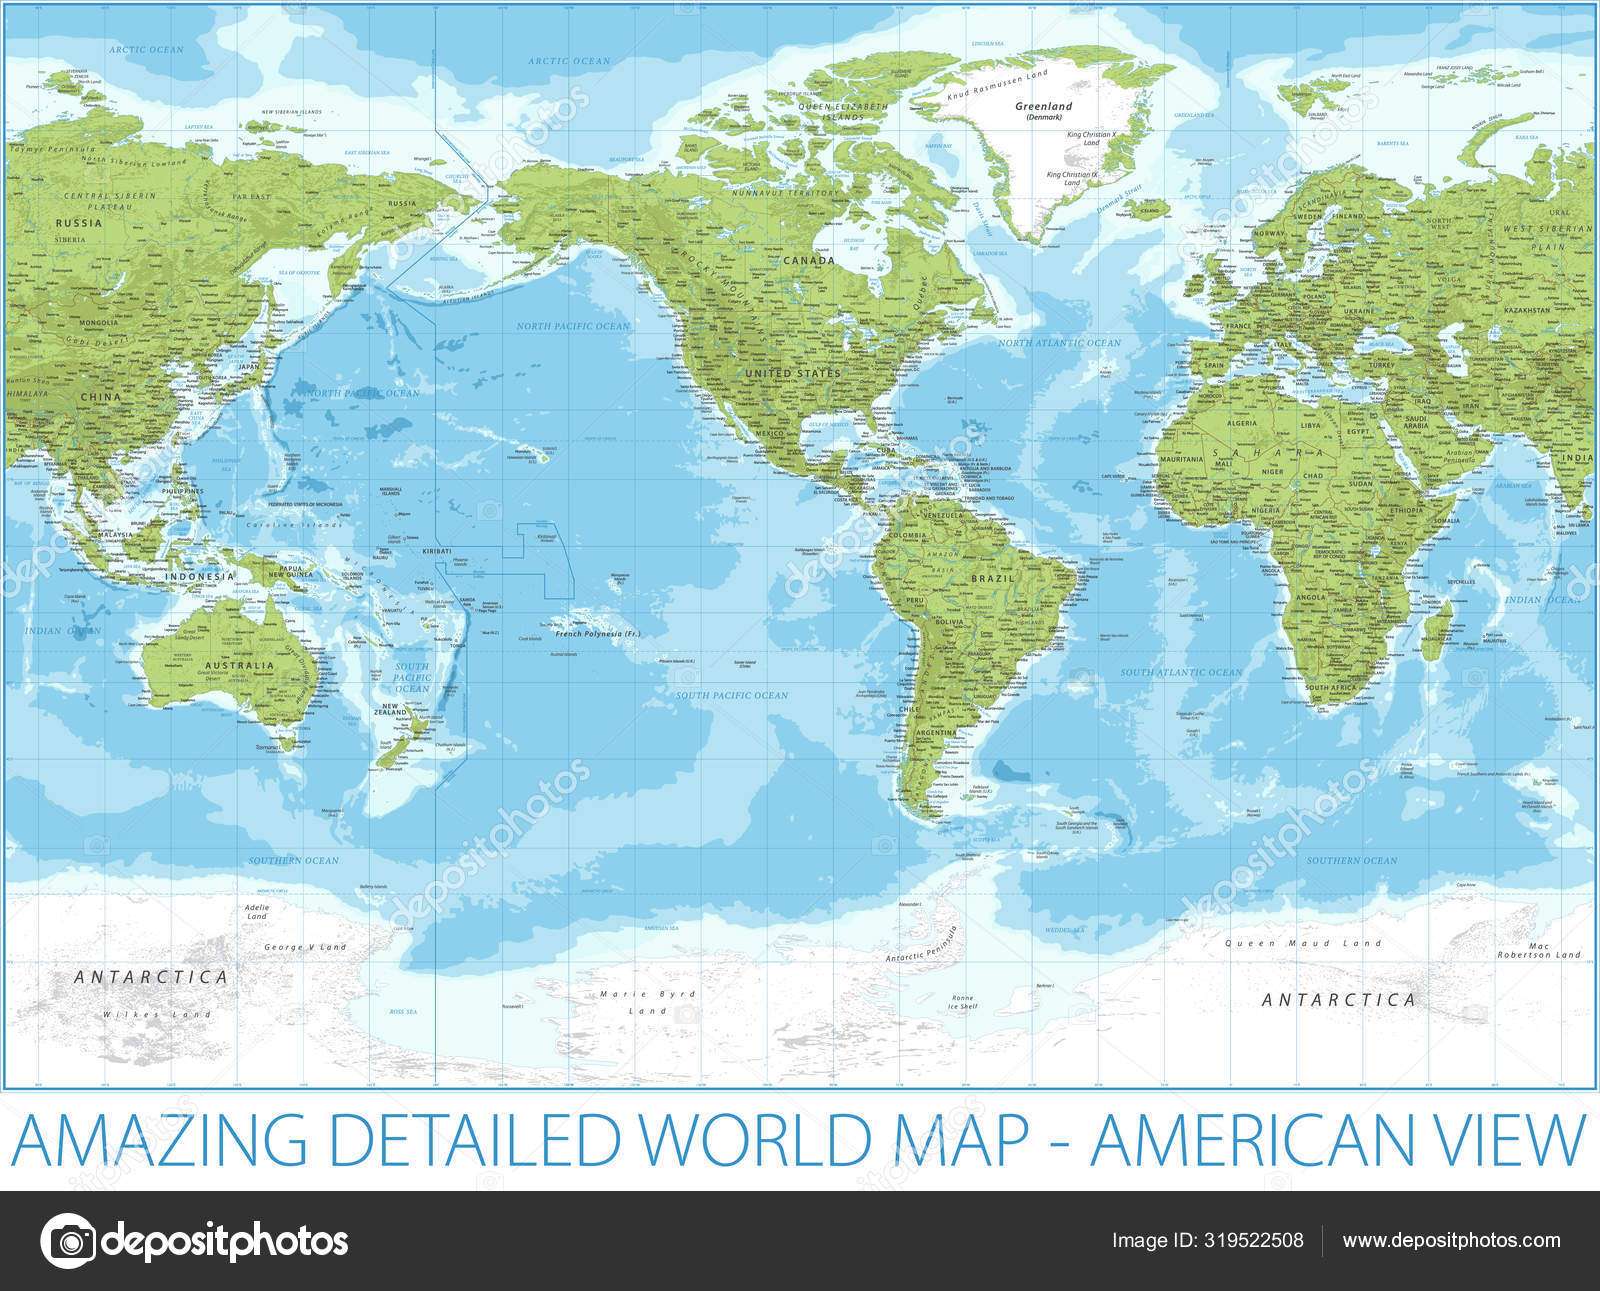 Picture of: World Map American View Relief Physical Topographic Vector Detailed Illustration America In Center Stock Vector C Dikobrazik 319522508